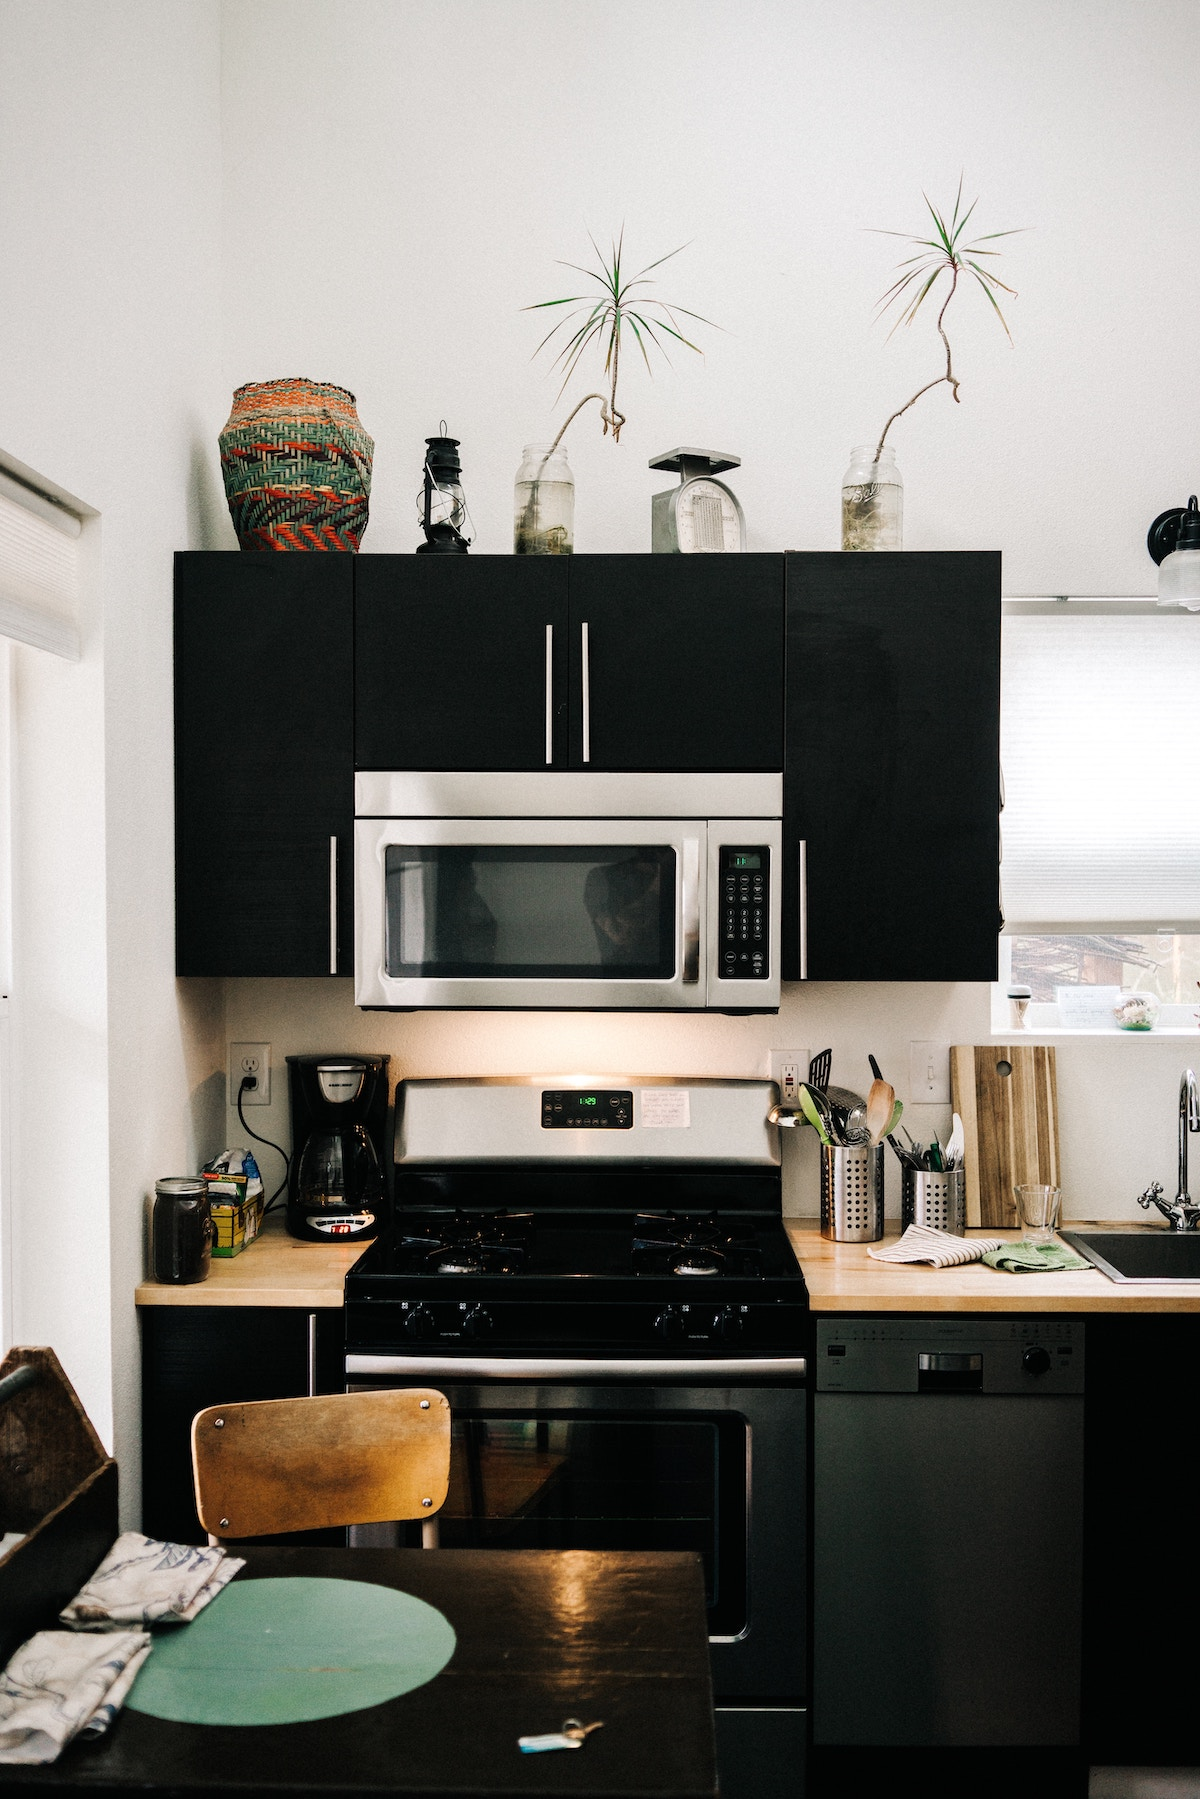 Signs Your Kitchen Appliances Need An Upgrade